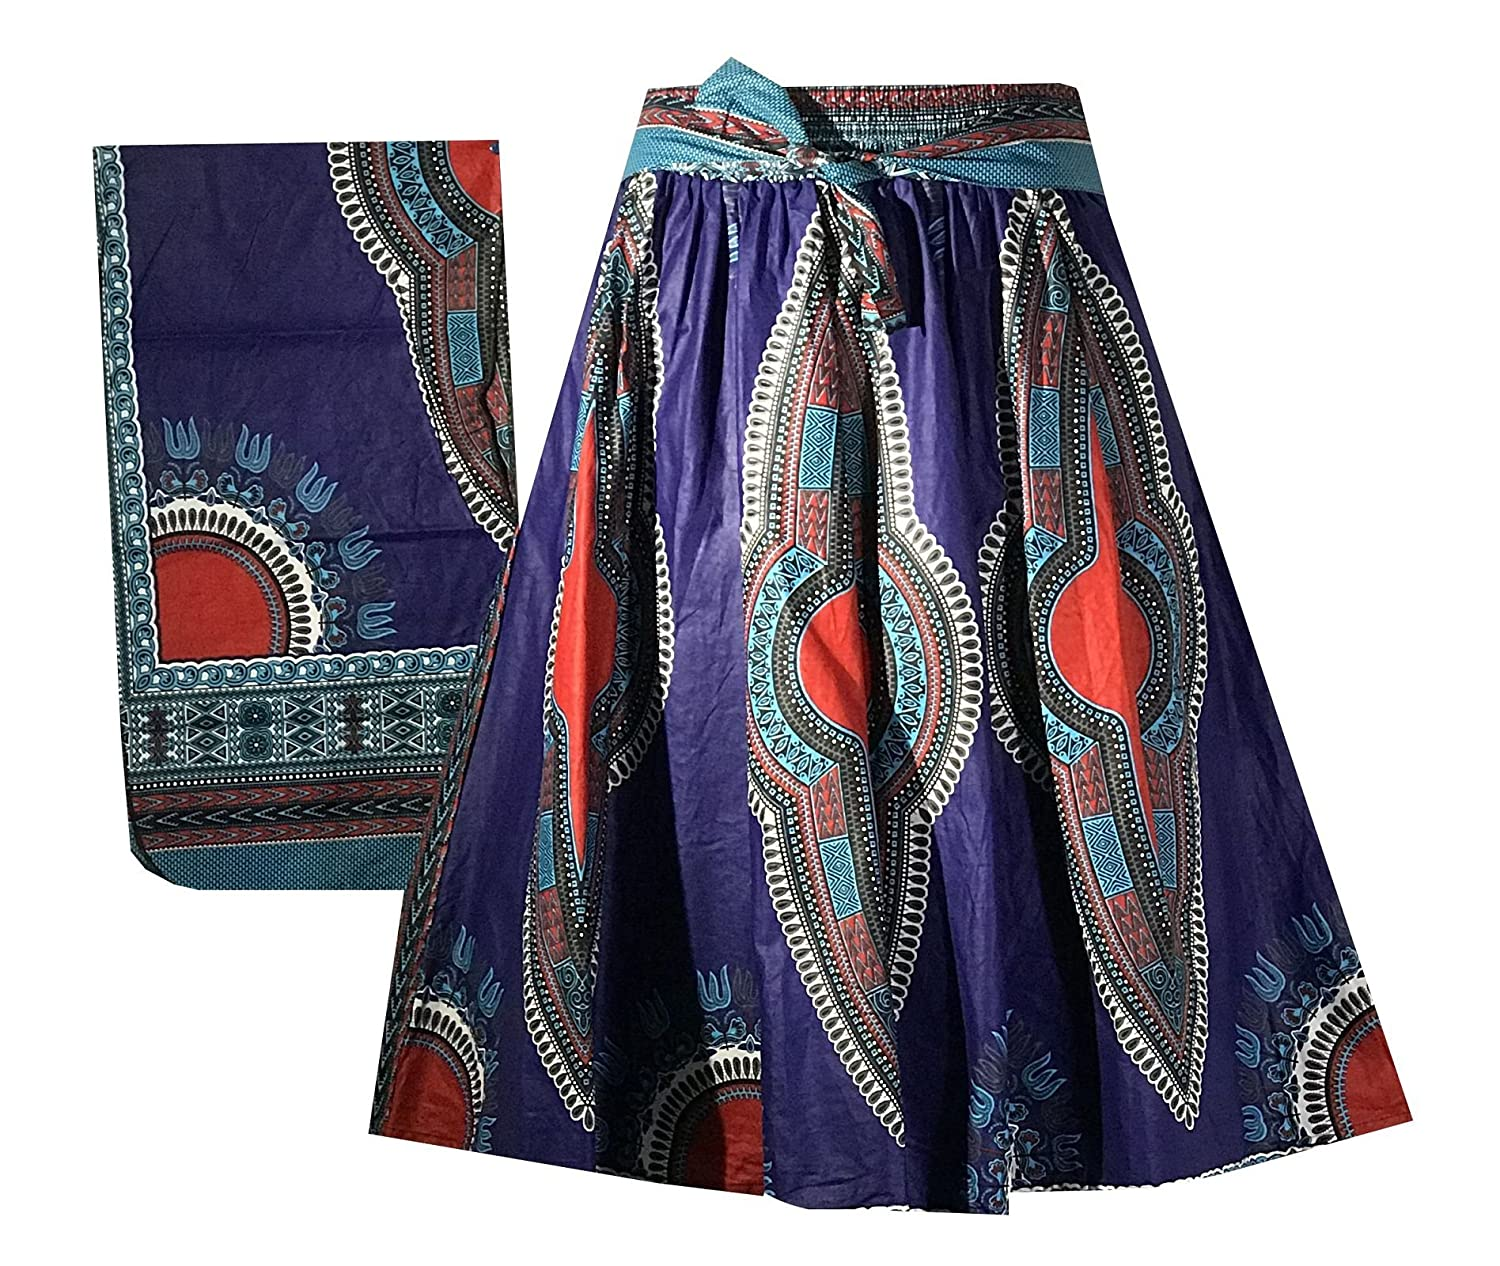 Decoraapparel Women's African Dashiki Maxi Skirt Long High Waist Skirt One Size 781385580406